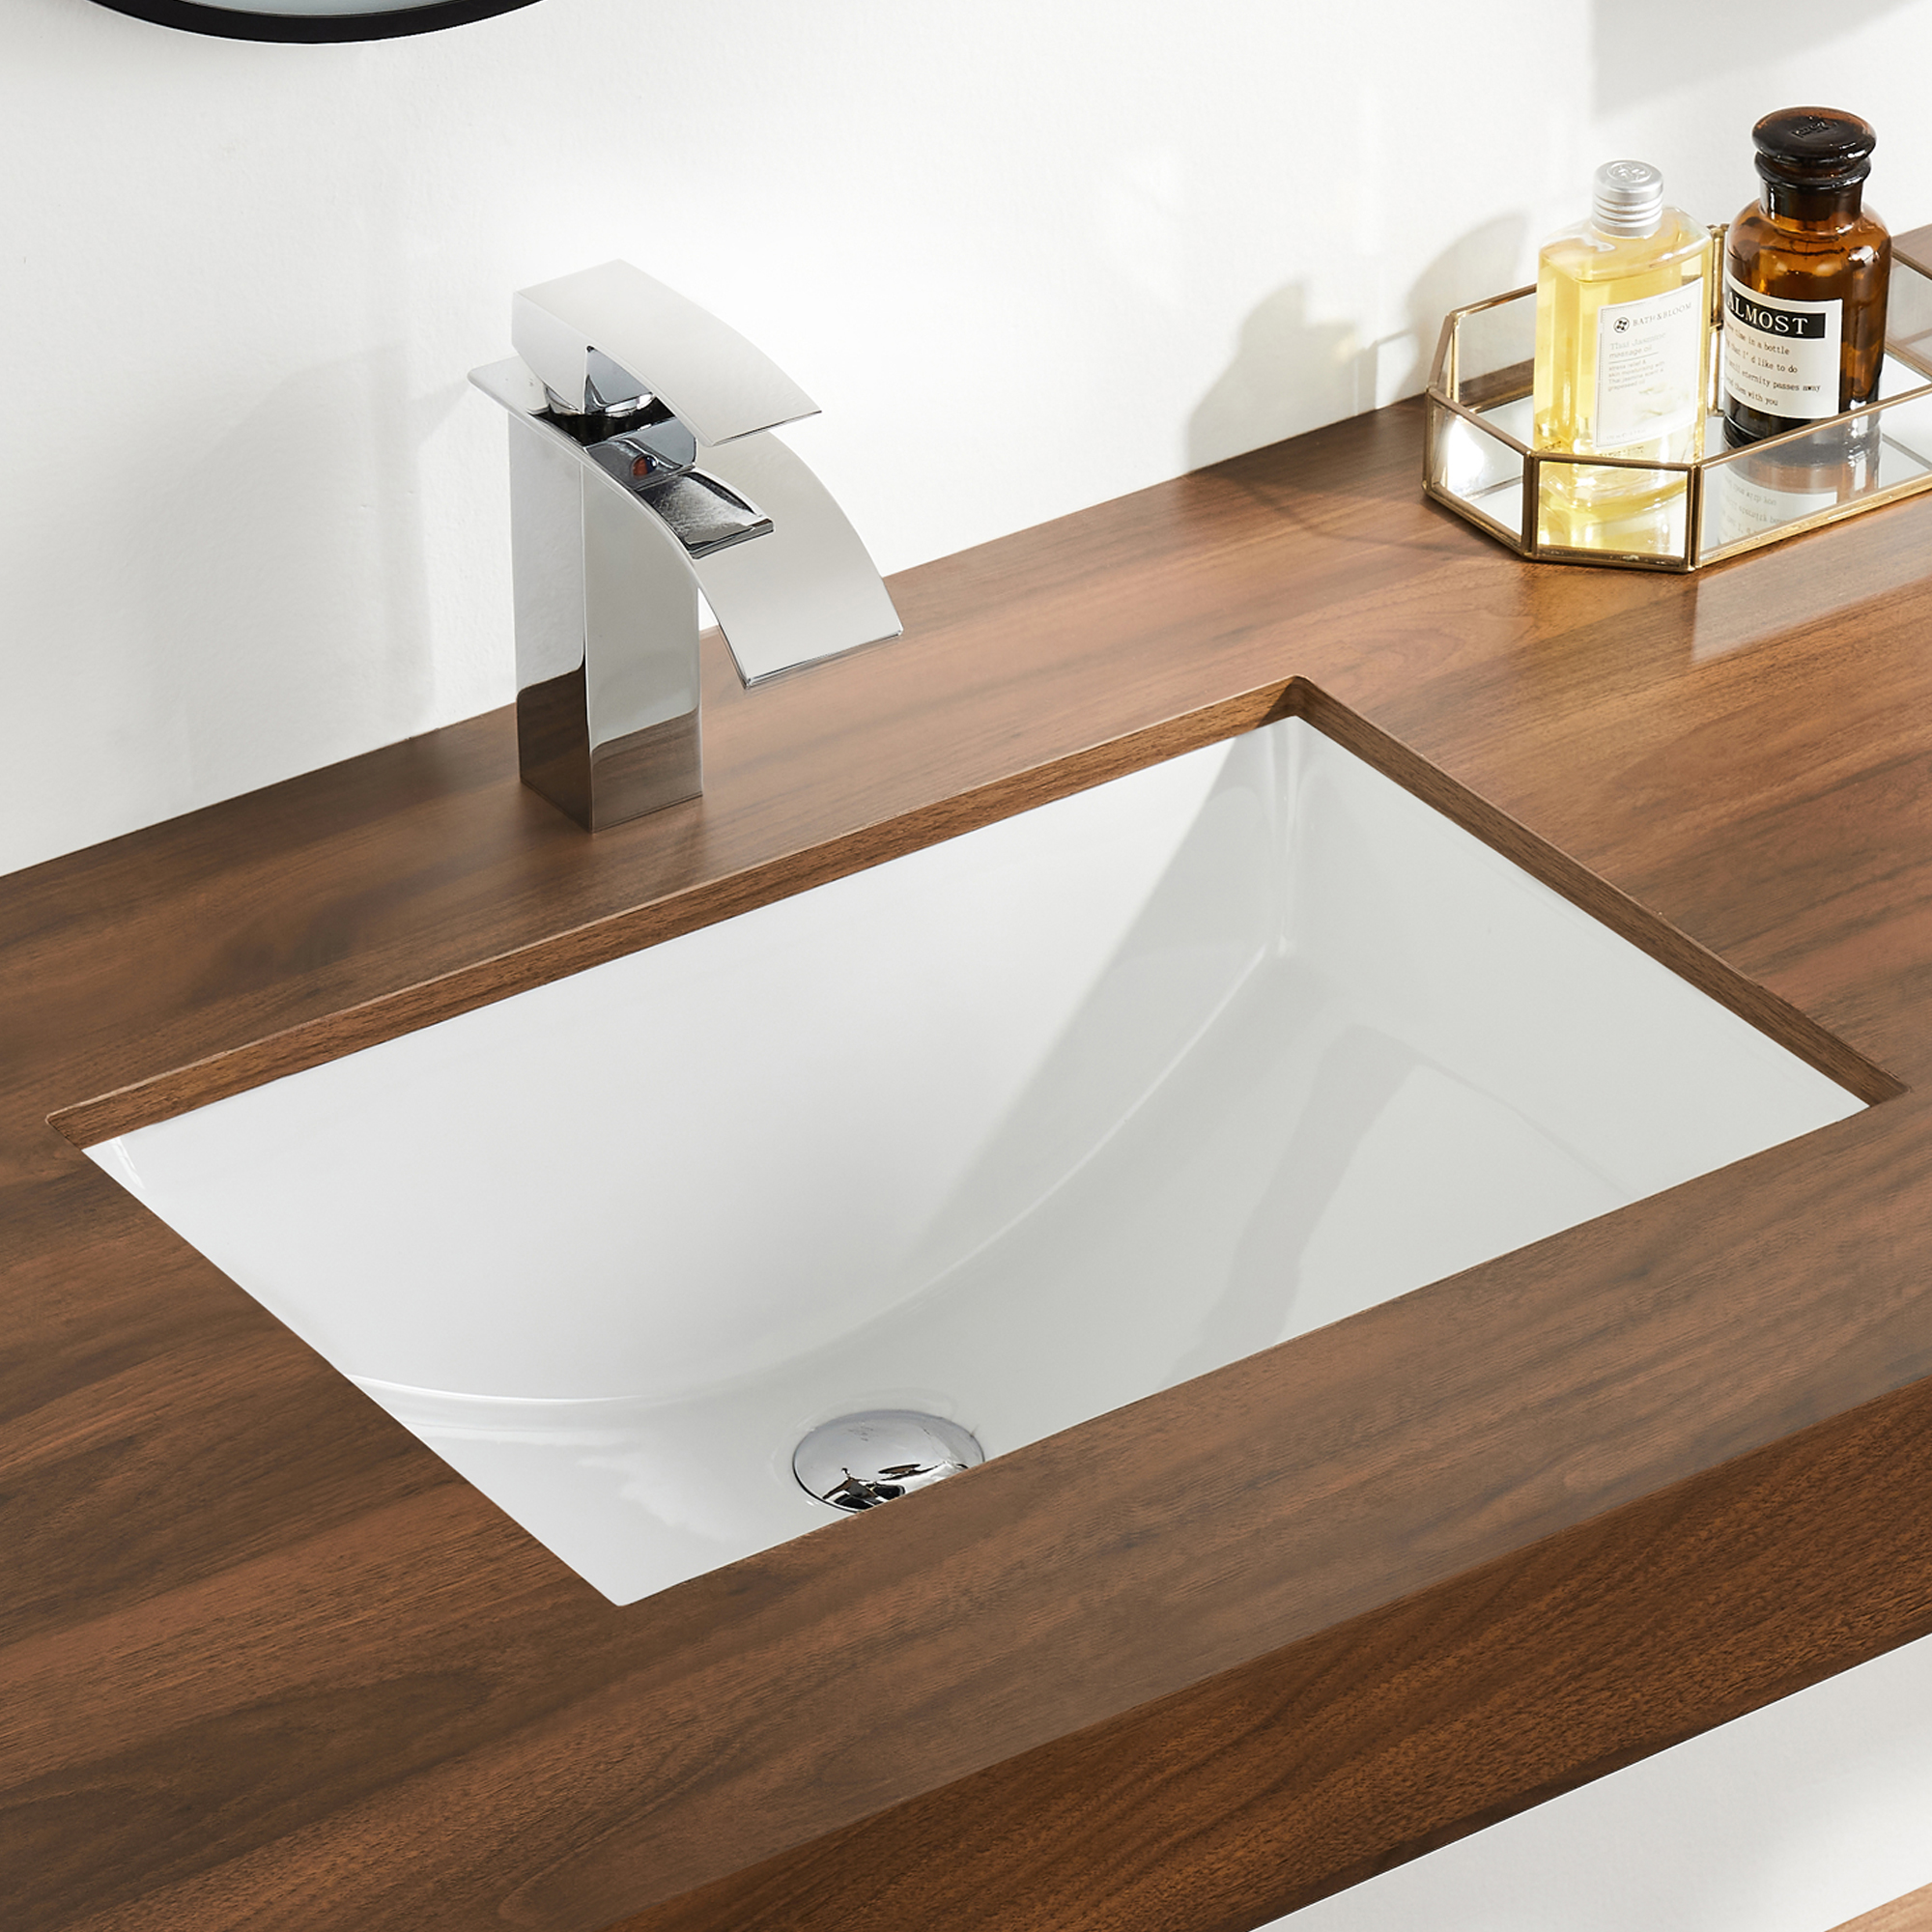 Deervalley Dv 1u101 Glazed Ceramic Rectangular Undermount Bathroom Sink With Overflow Walmart Com Walmart Com